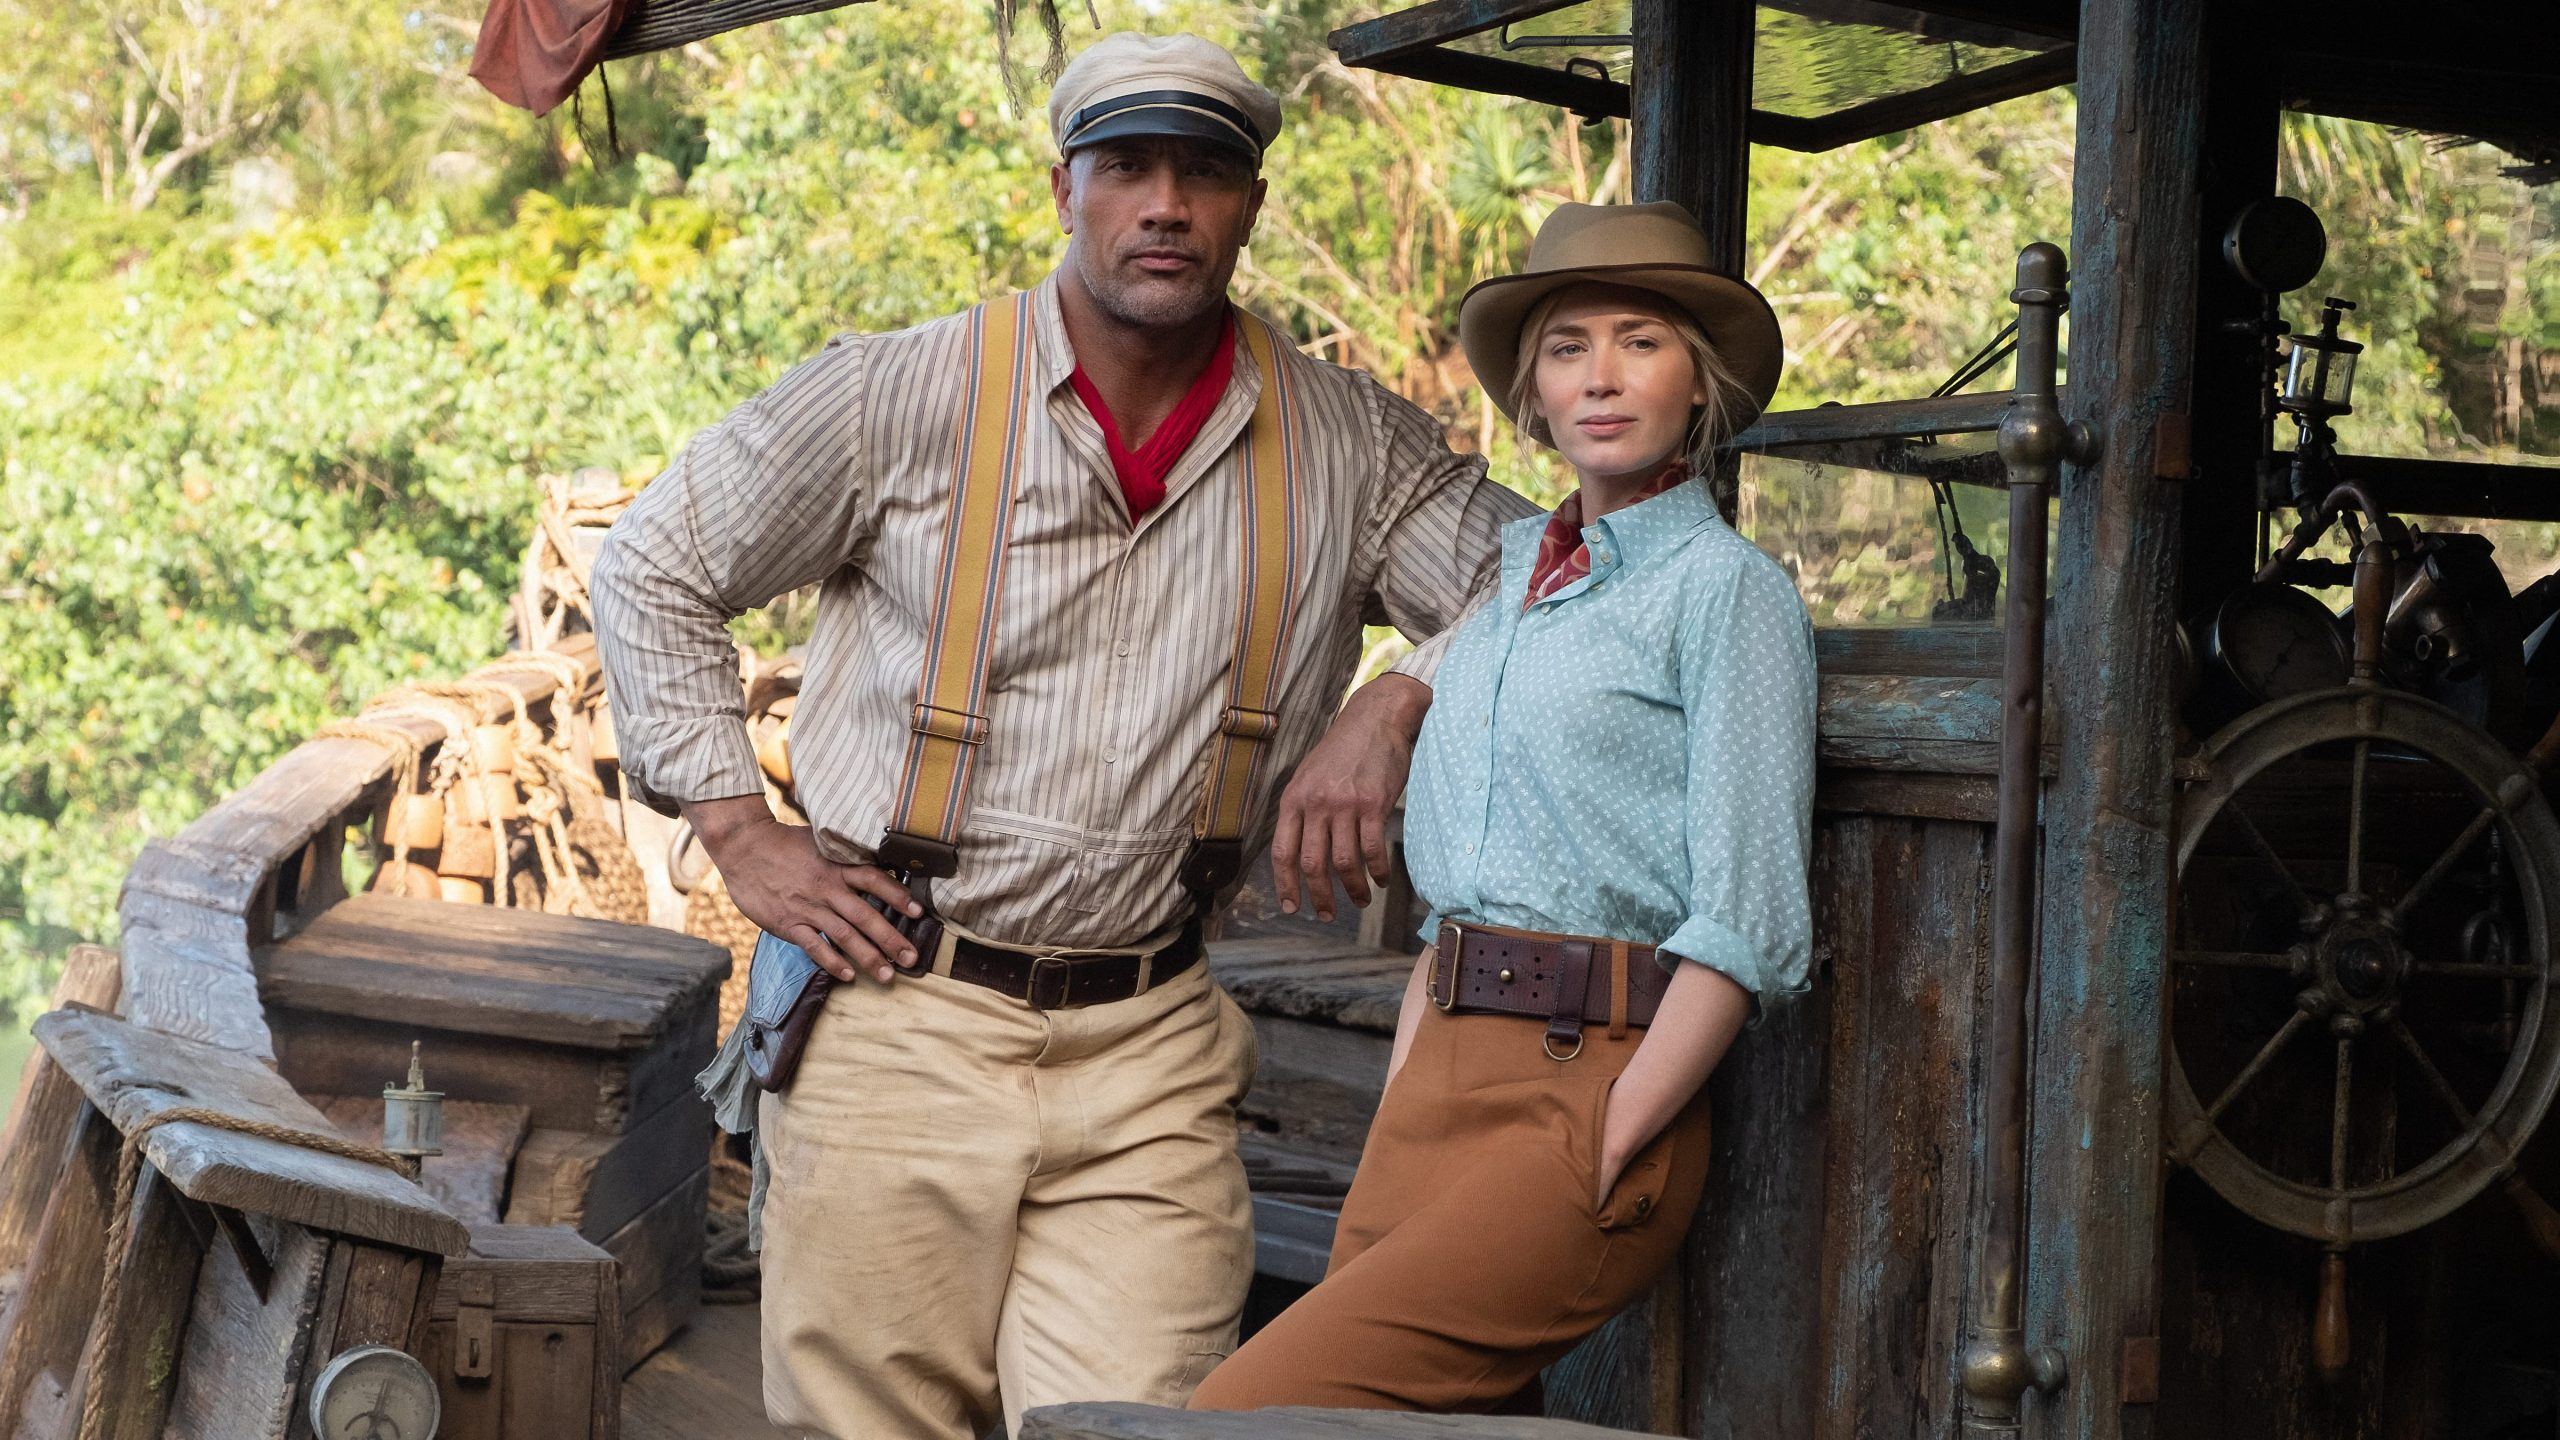 Disney's Jungle Cruise with Dwayne Johnson and Emily Blunt